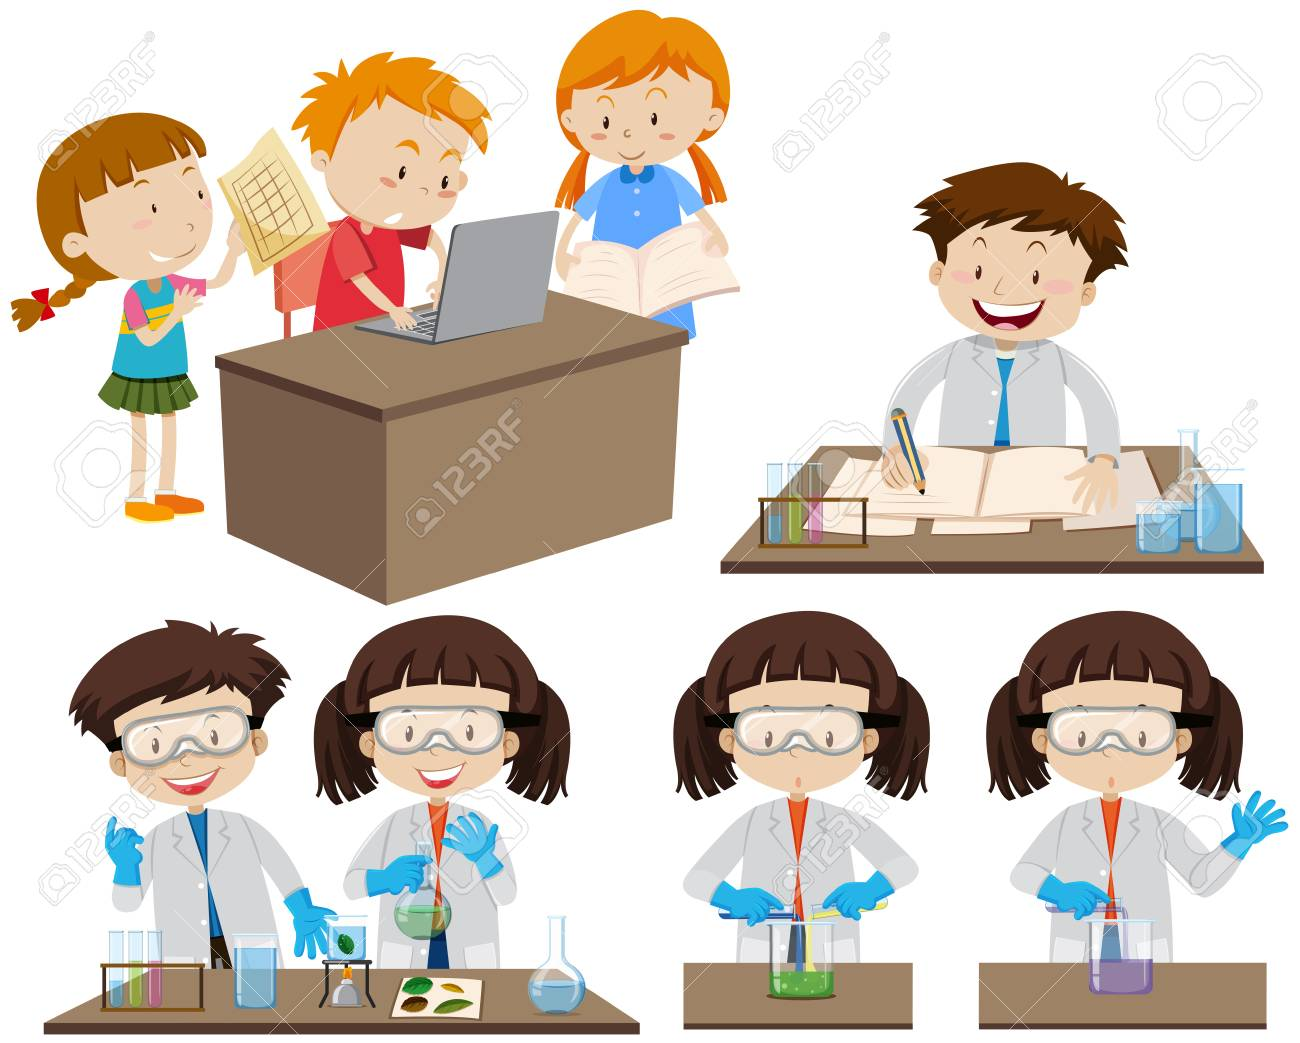 Students working in lab and on computer illustration - 97836952